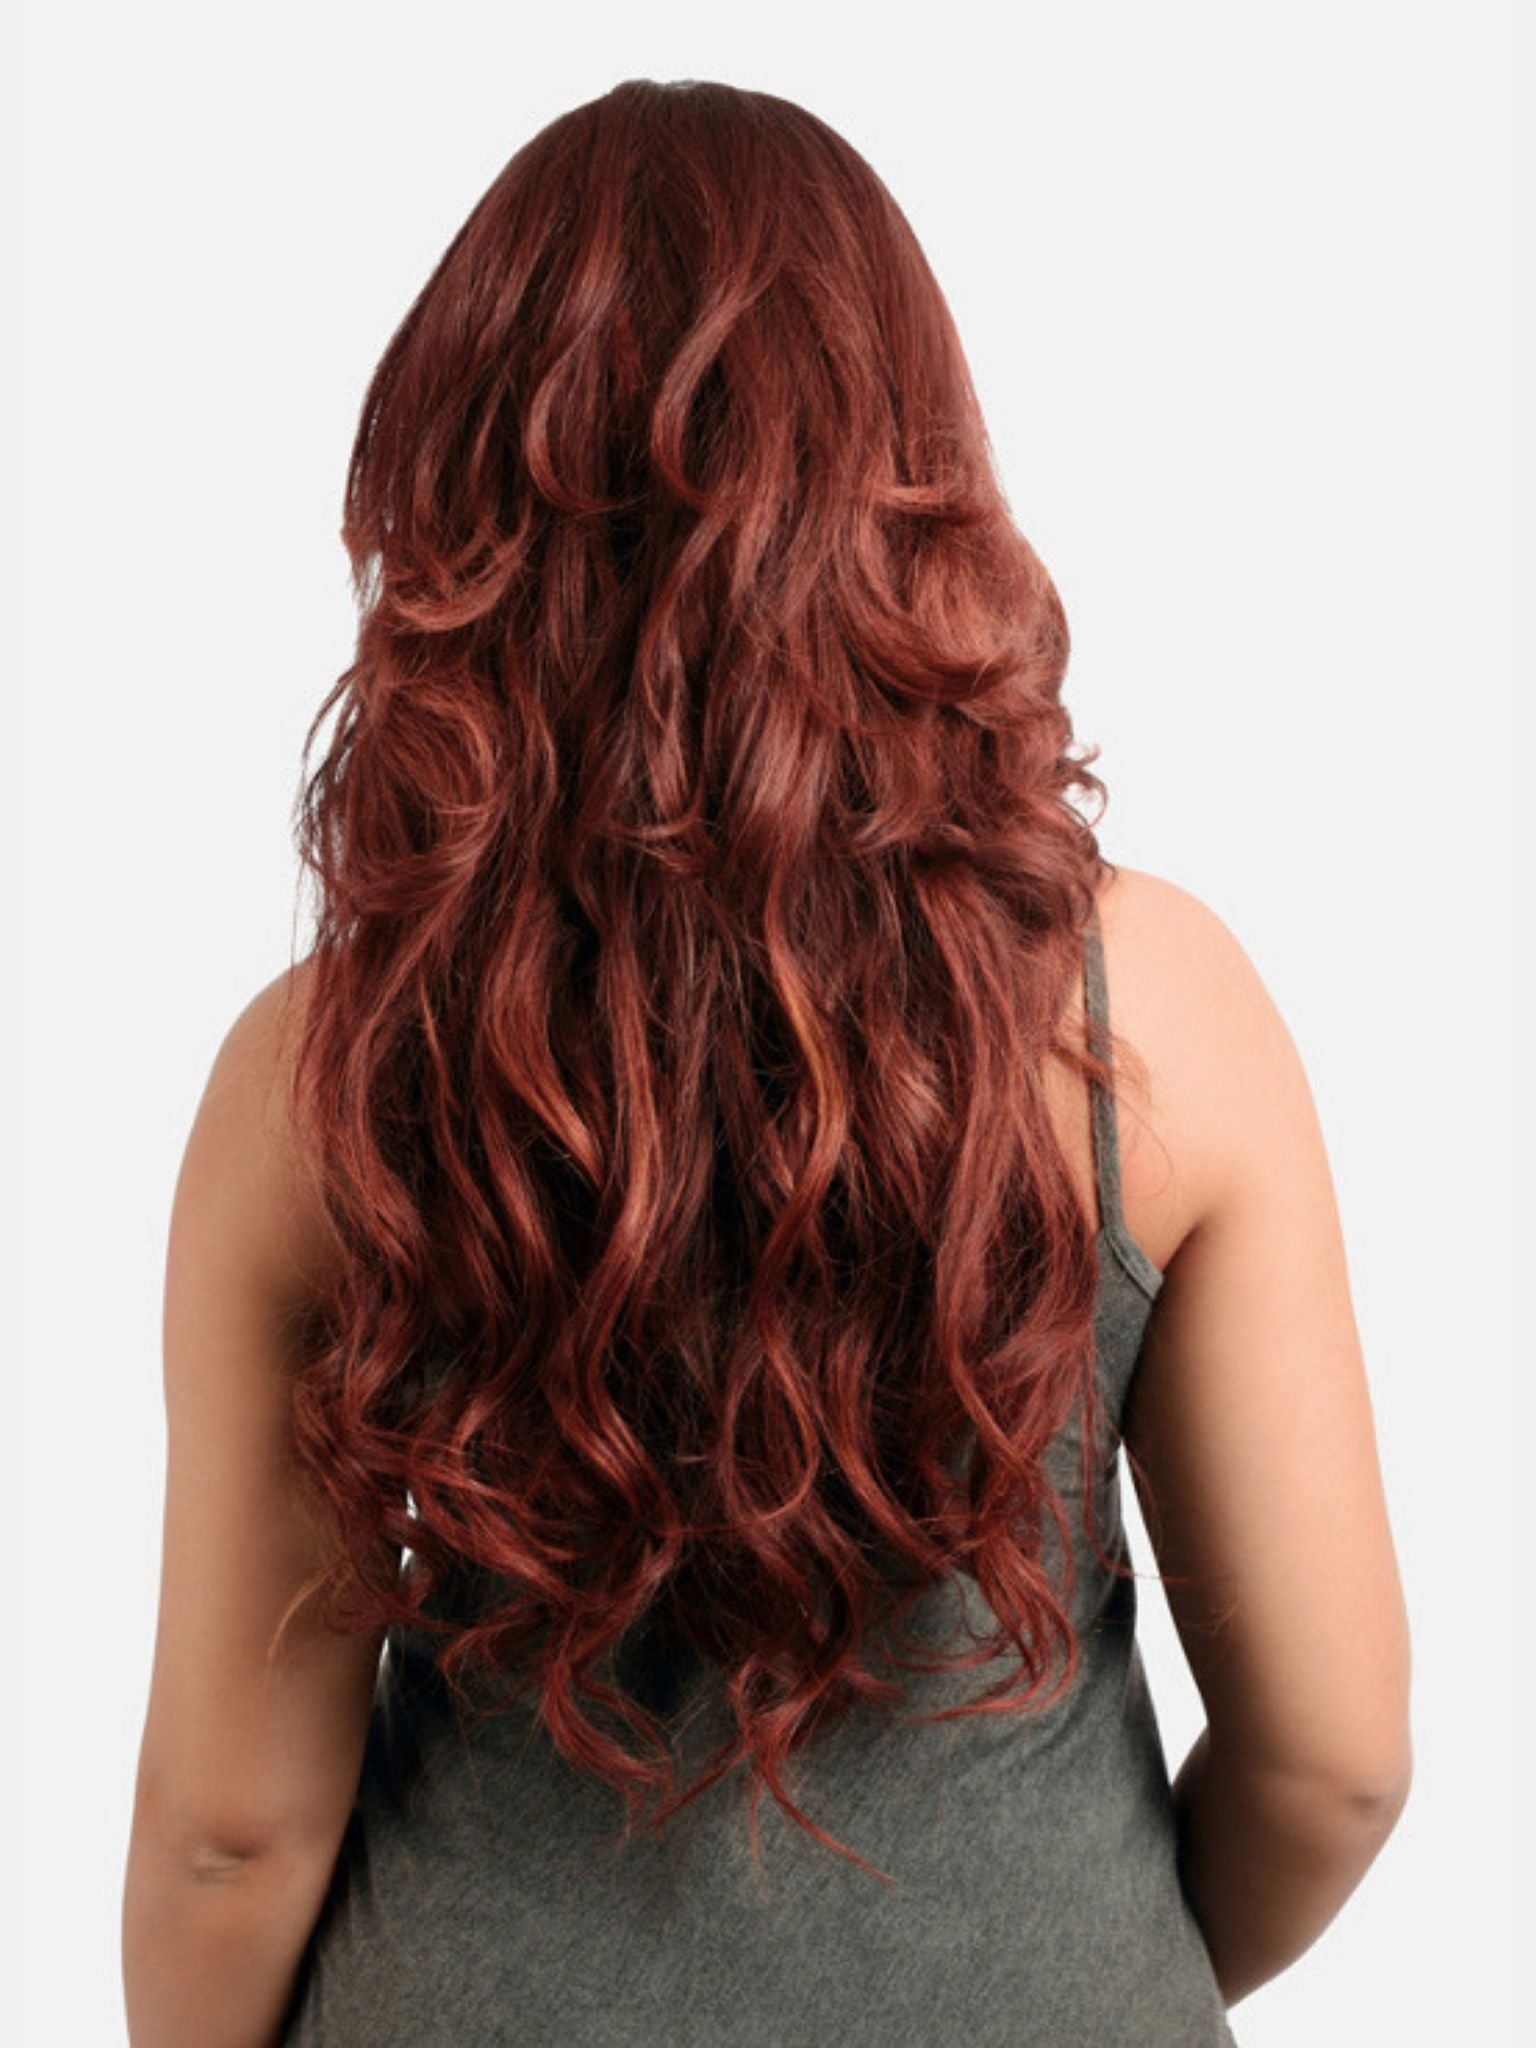 Seamless Tape-In Hair Extensions - Vixen Auburn #33